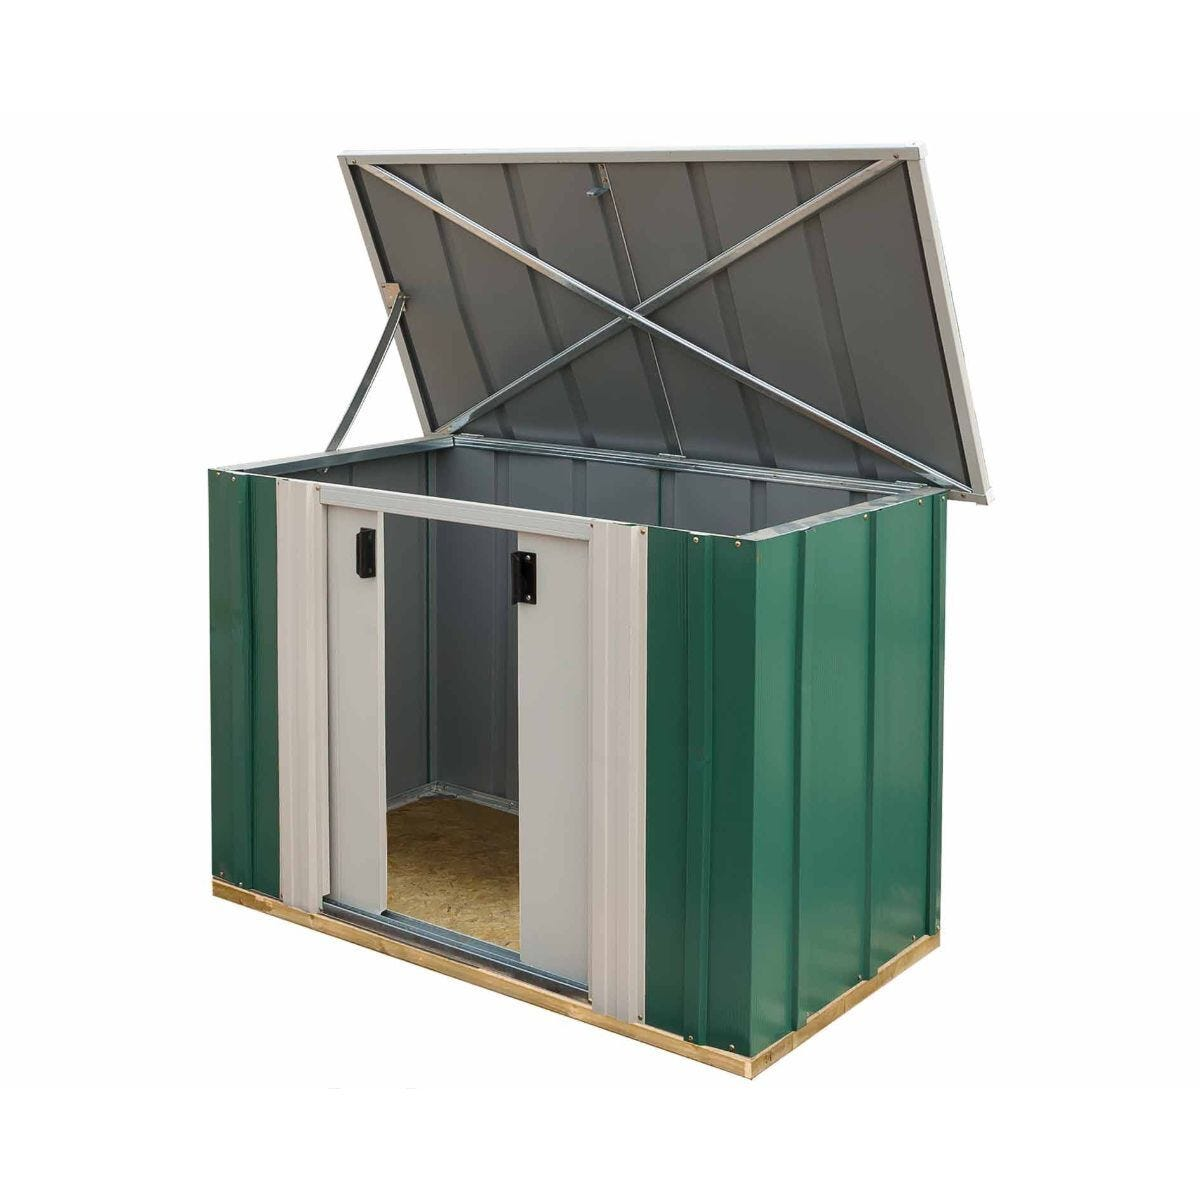 Rowlinson Greenvale Metal Storette with Floor 4ft x 2ft